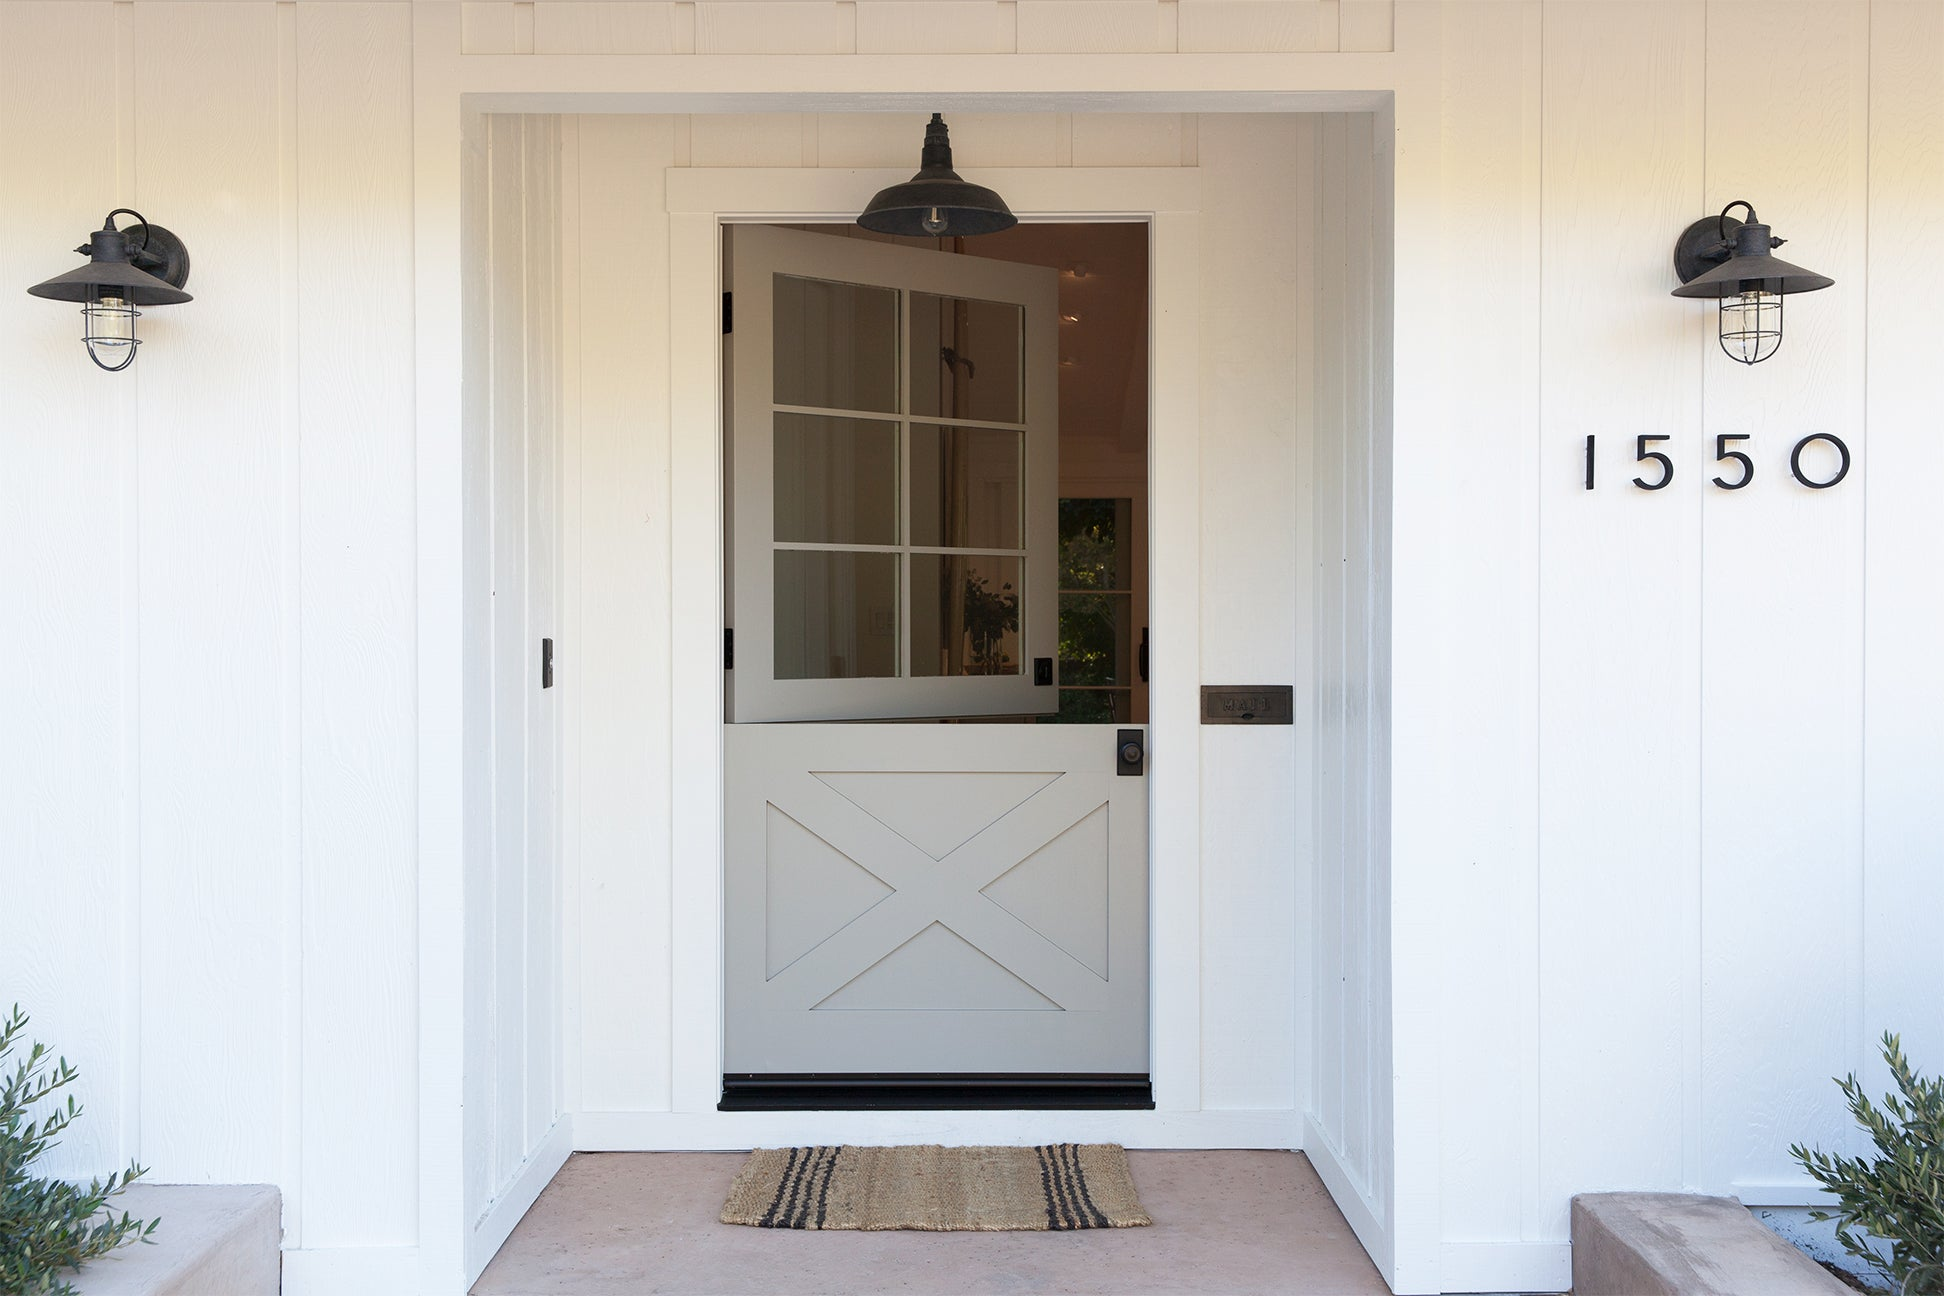 tan colored dutch door with a plain welcome mat and white exterior house